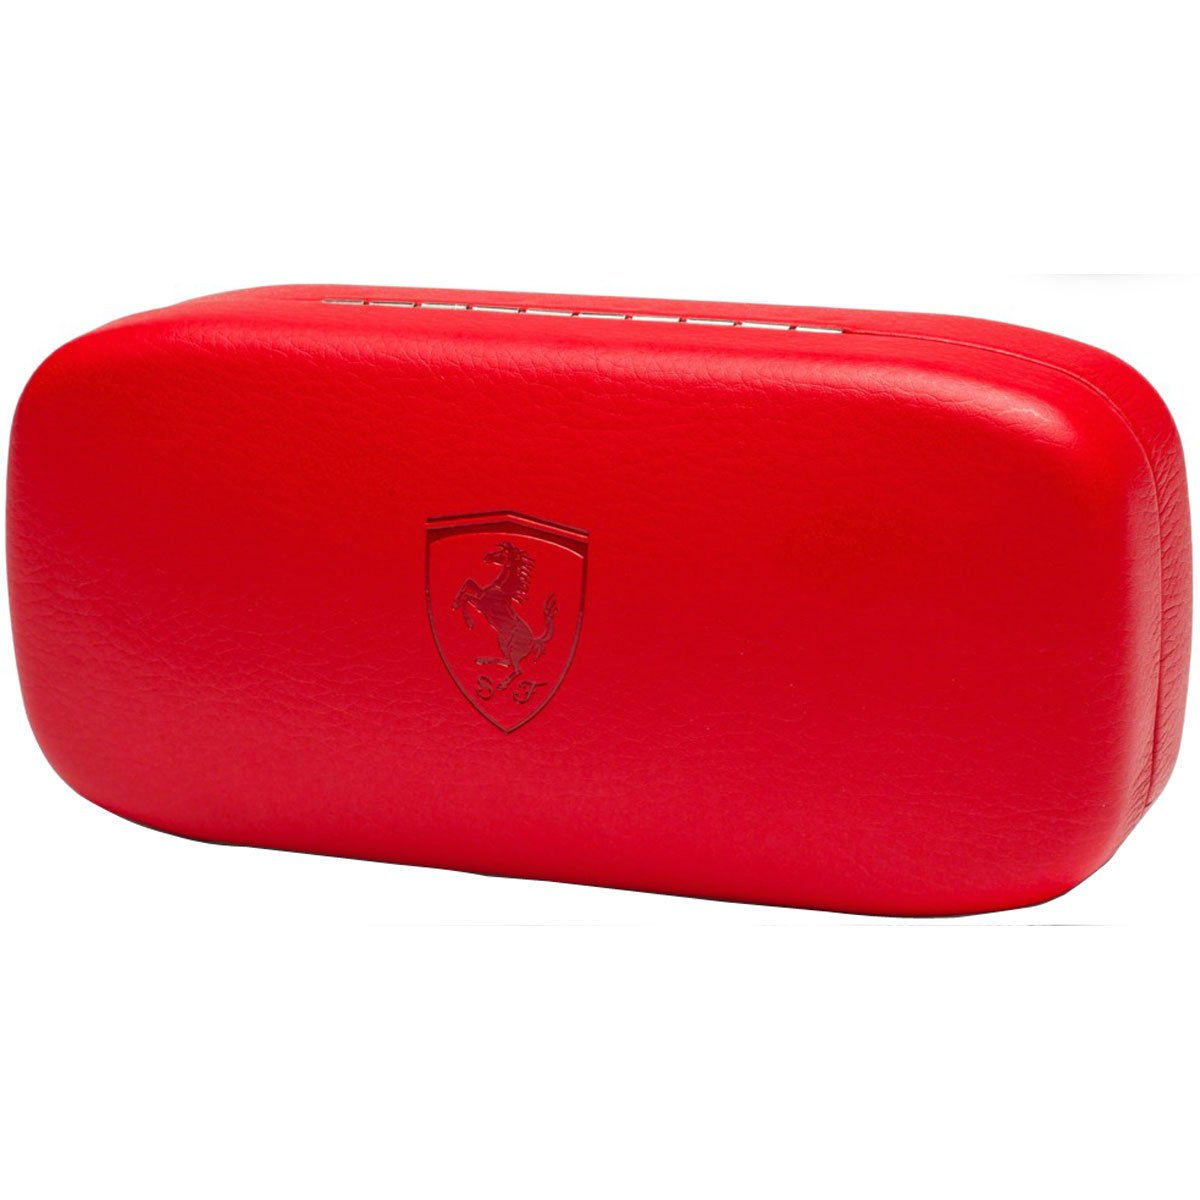 Oakley Scuderia Ferrari Storage Case Sunglass Accessories - Red/One Size by Oakley